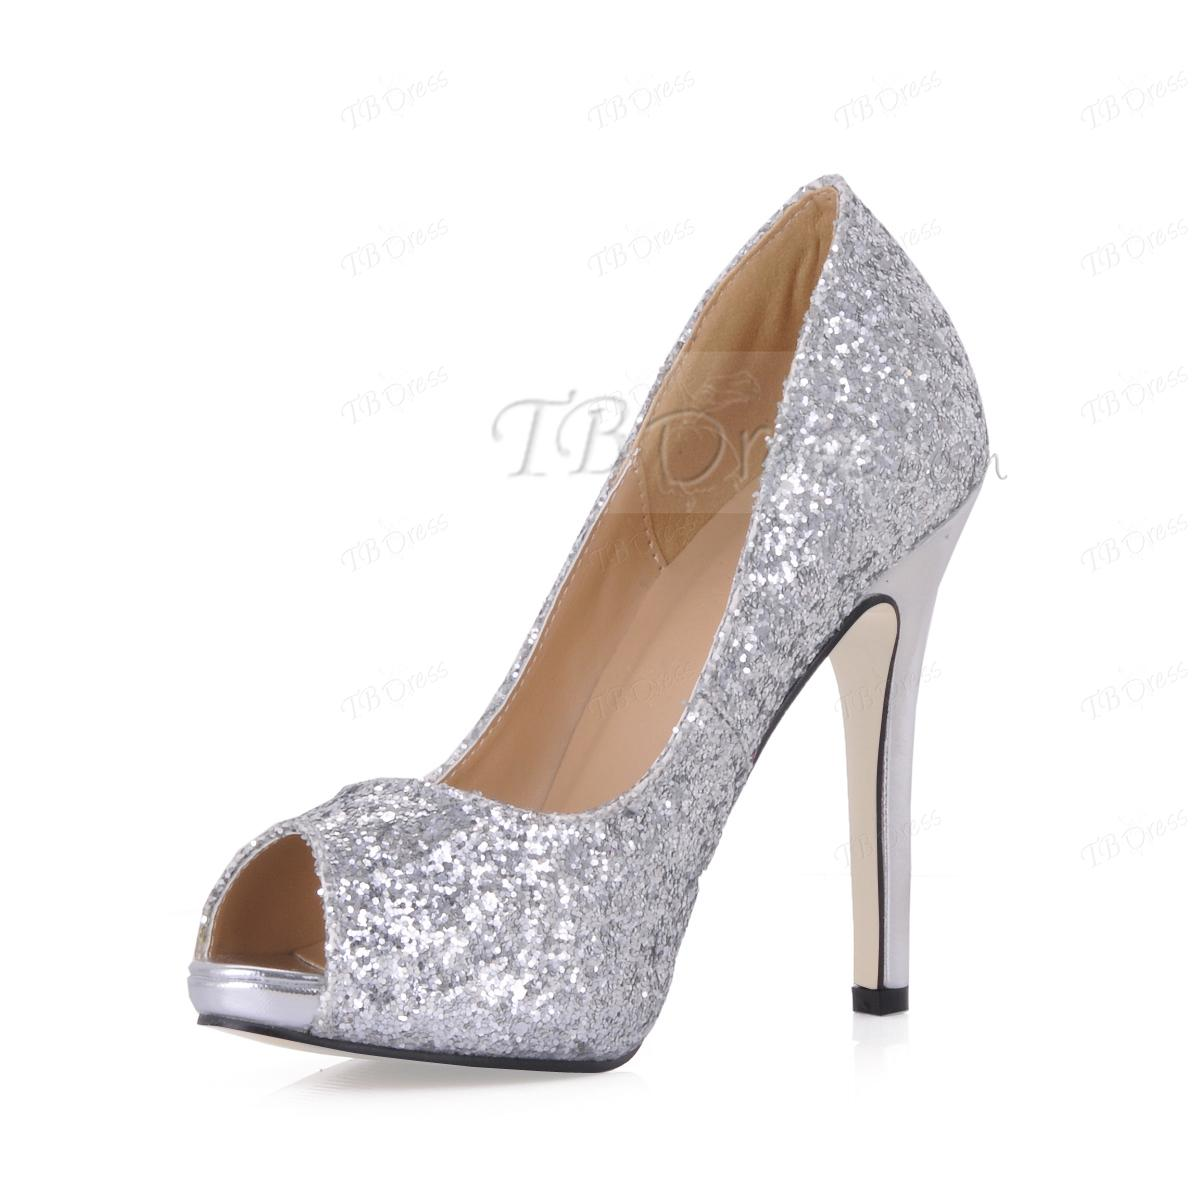 nice wedding shoes photo - 1